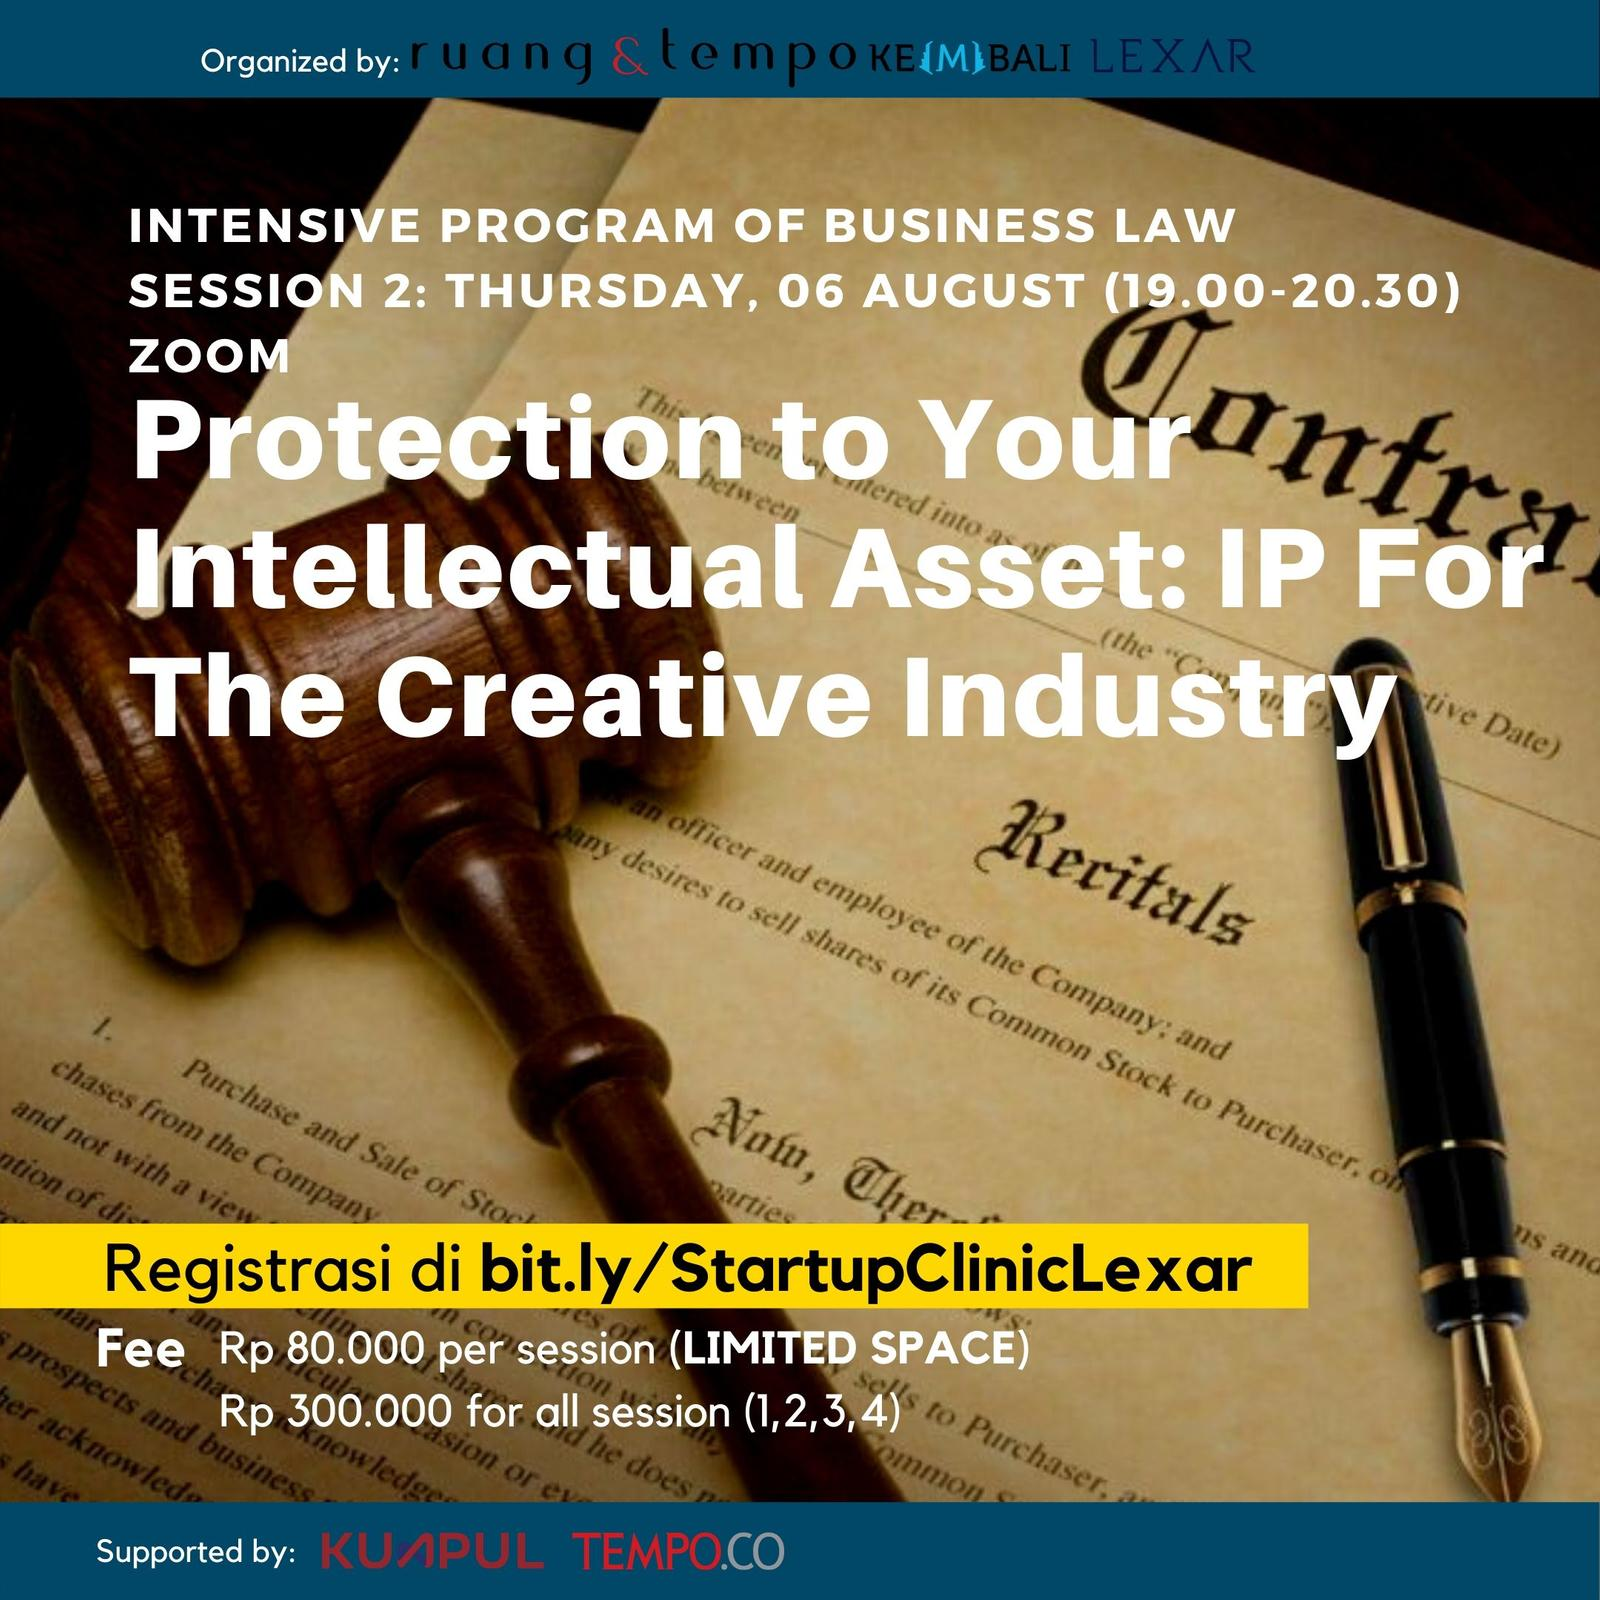 Startup Clinic x Lexar: Protection to Your Intellectual Asset: IP For The Creative Industry